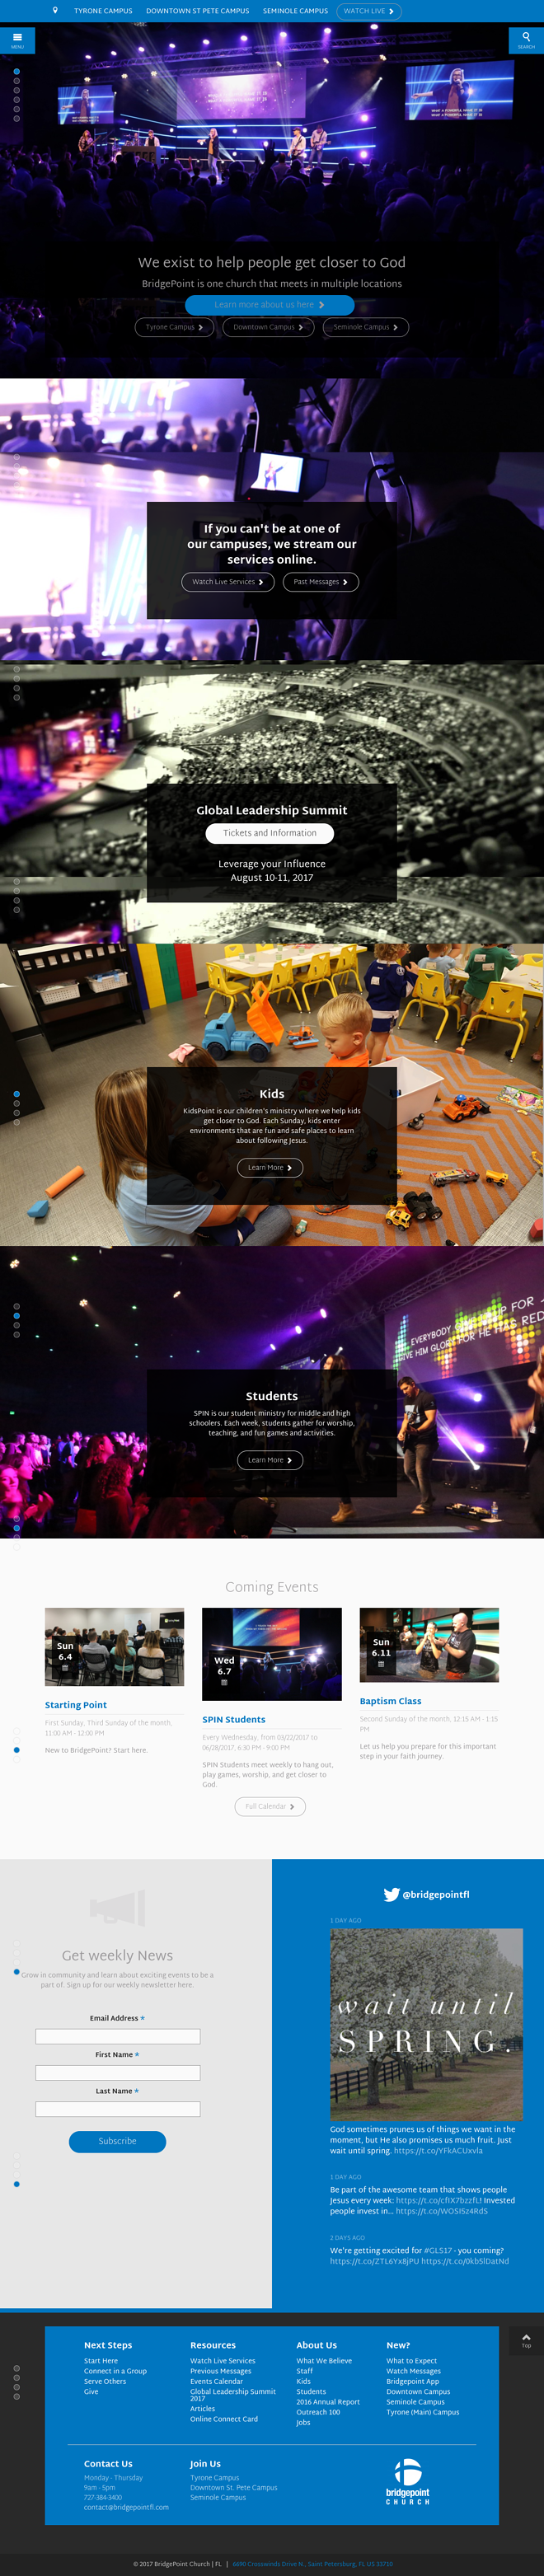 6-awesome-multi-site-church-websites-for-inspiration-bridgepoint.png